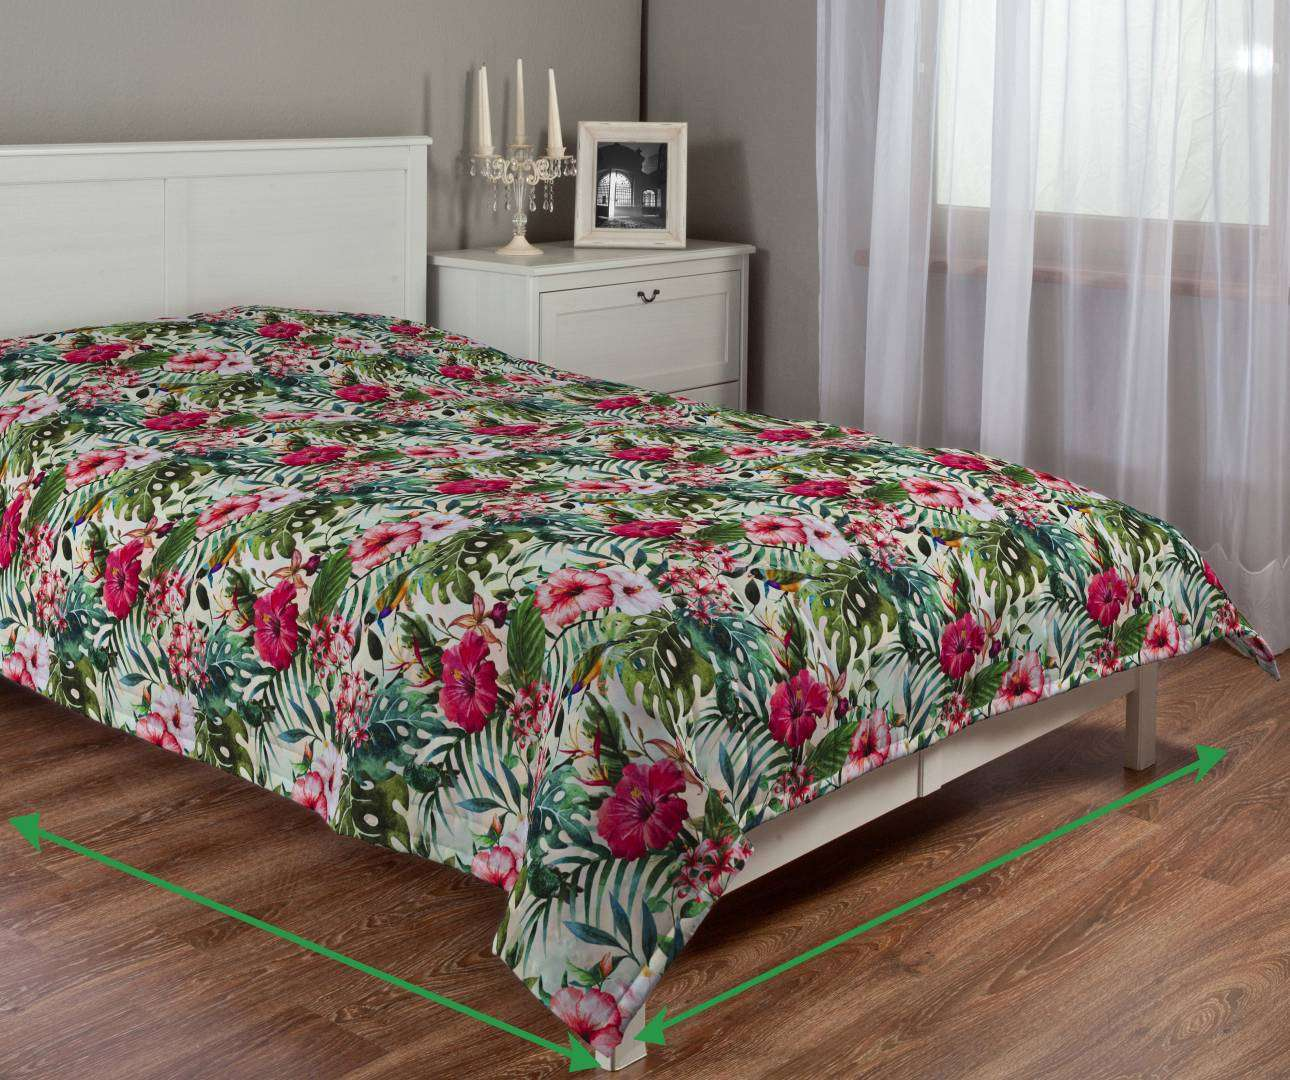 Quilted throw (vertical quilt pattern) in collection New Art, fabric: 140-21